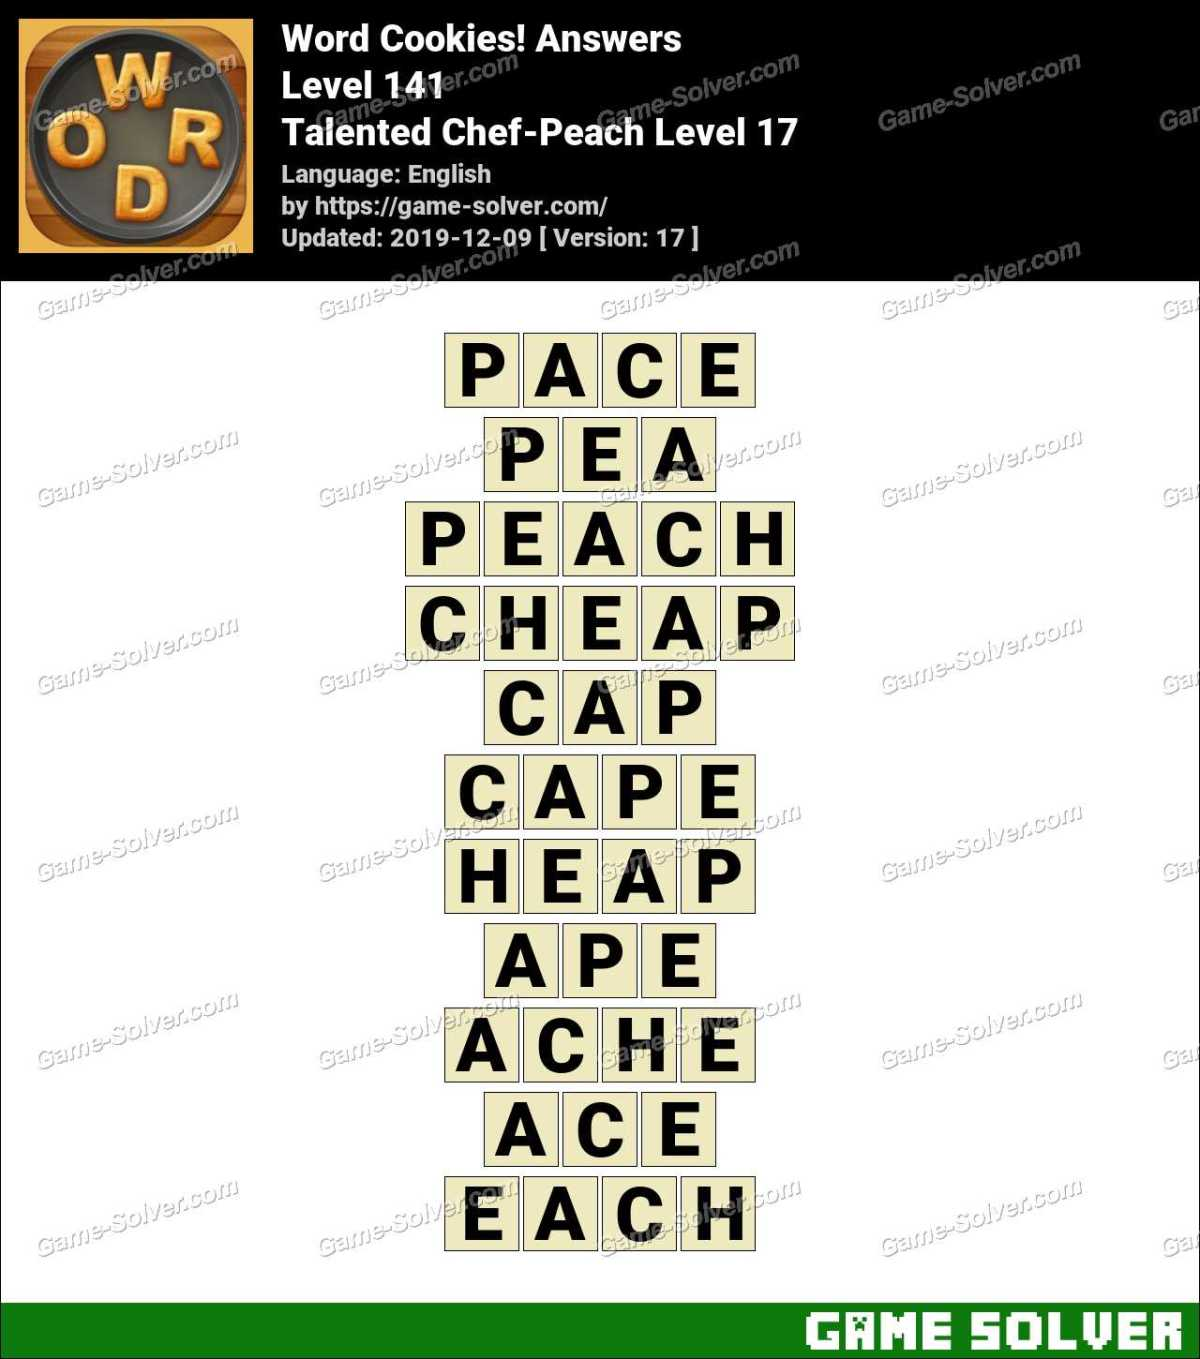 Word Cookies Talented Chef-Peach Level 17 Answers